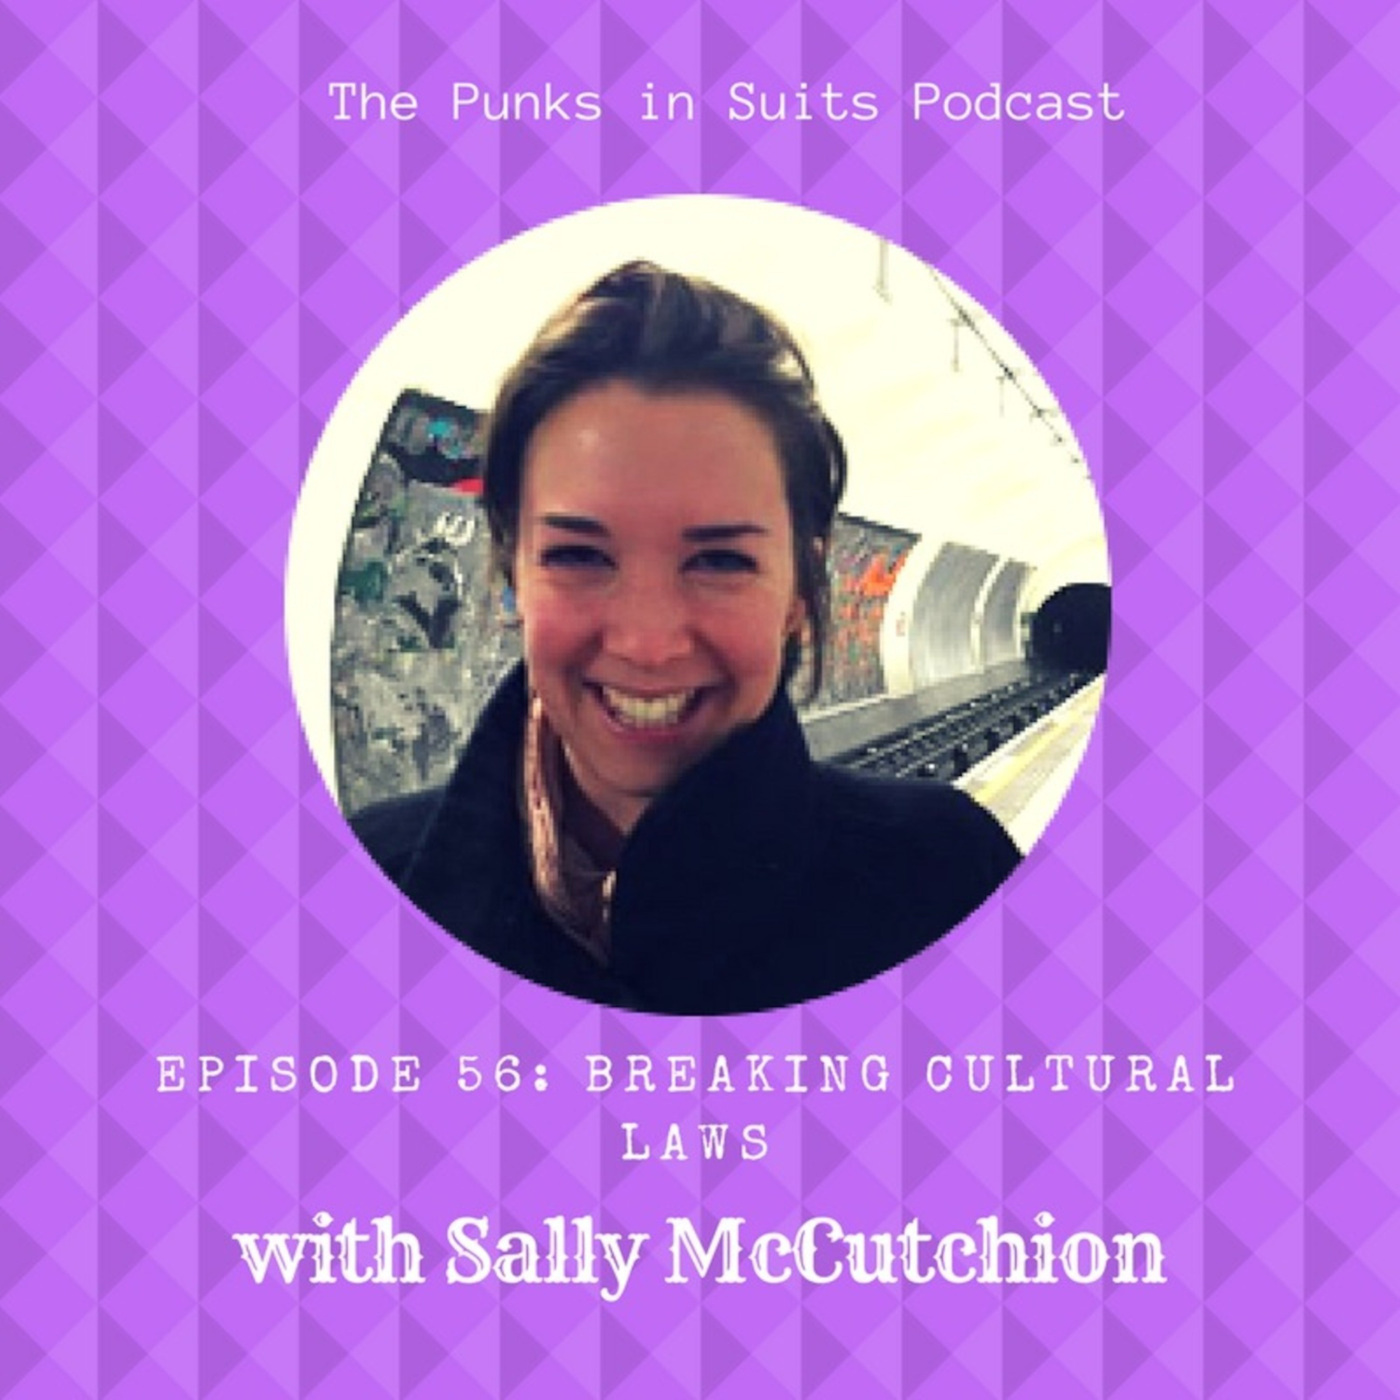 Episode 56: Breaking Cultural Laws with Sally McCutchion